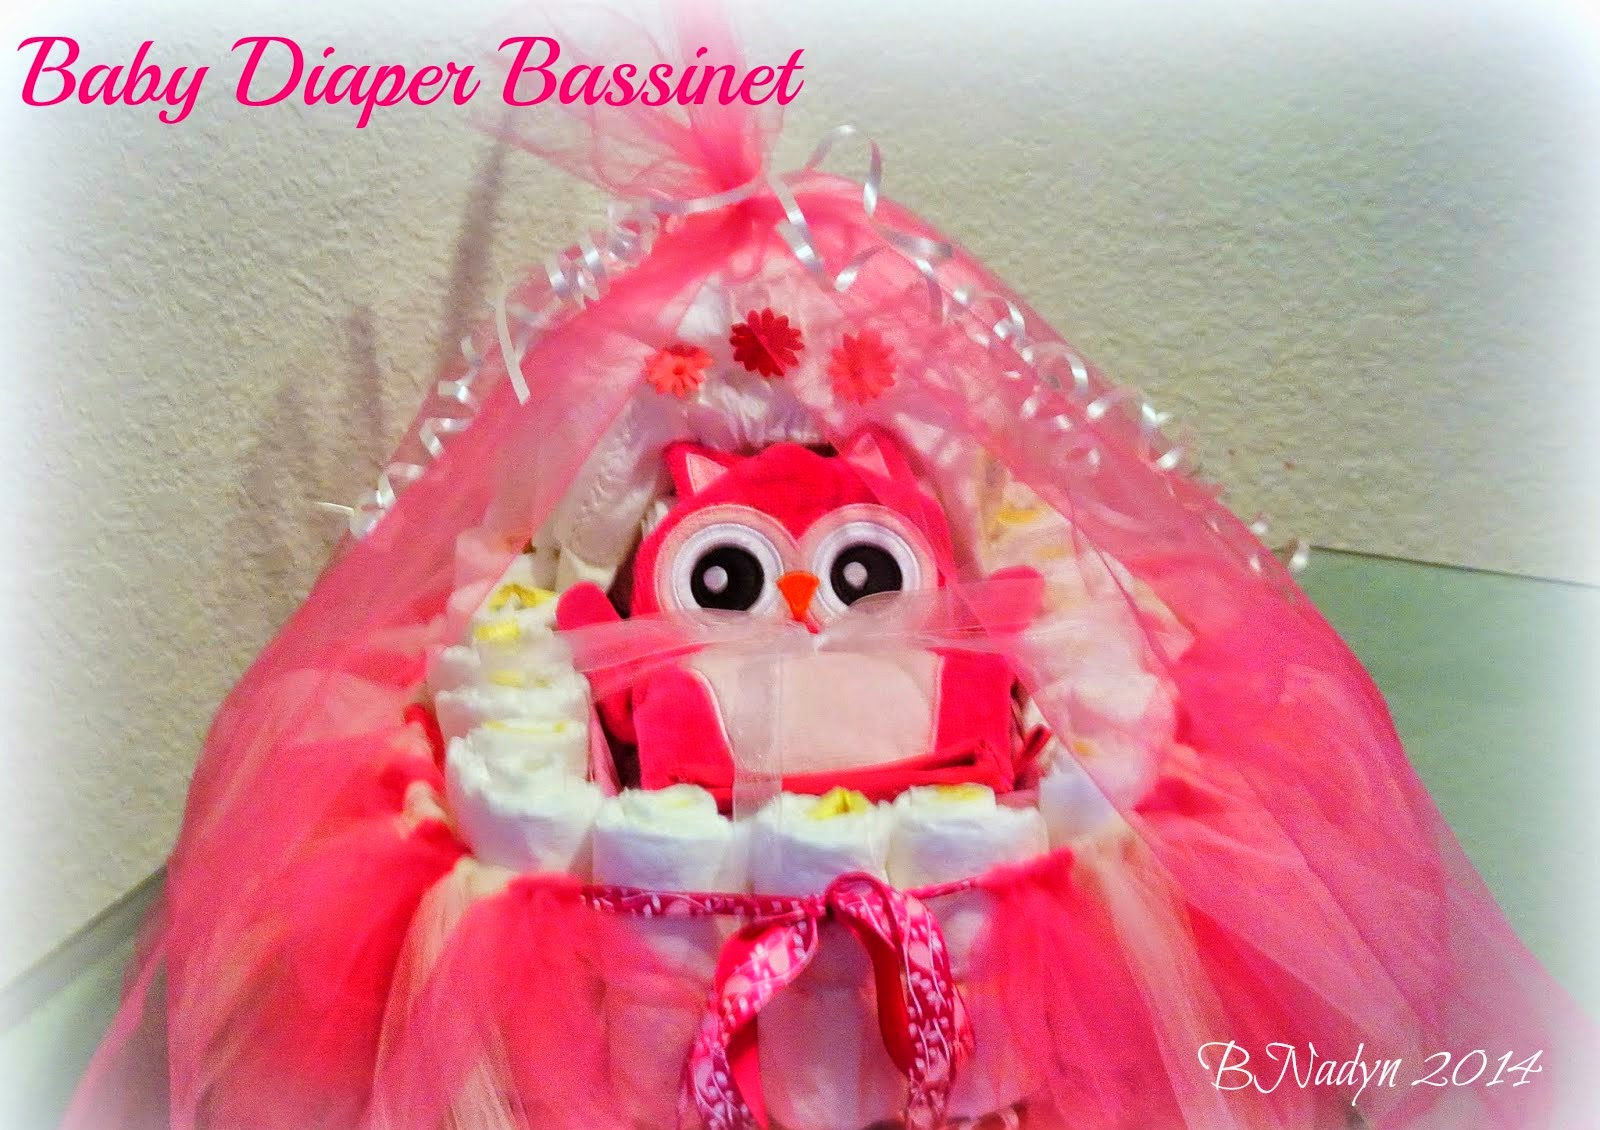 http://b-is4.blogspot.com/2014/02/baby-diaper-bassinet.html